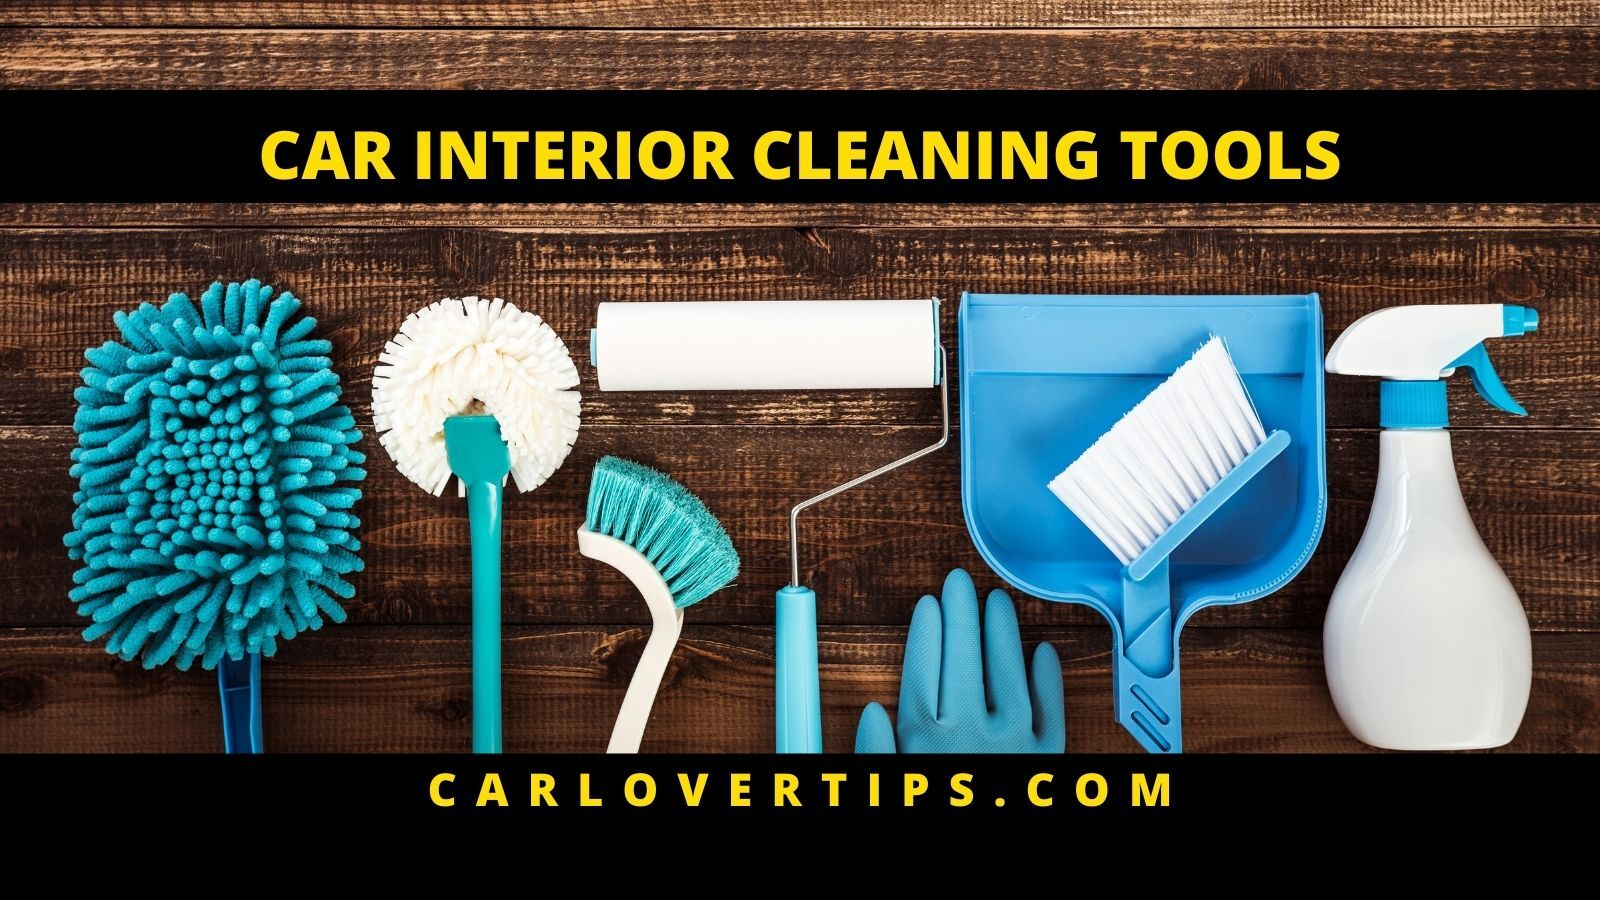 Car Interior Cleaning Tools Car Lover Tips